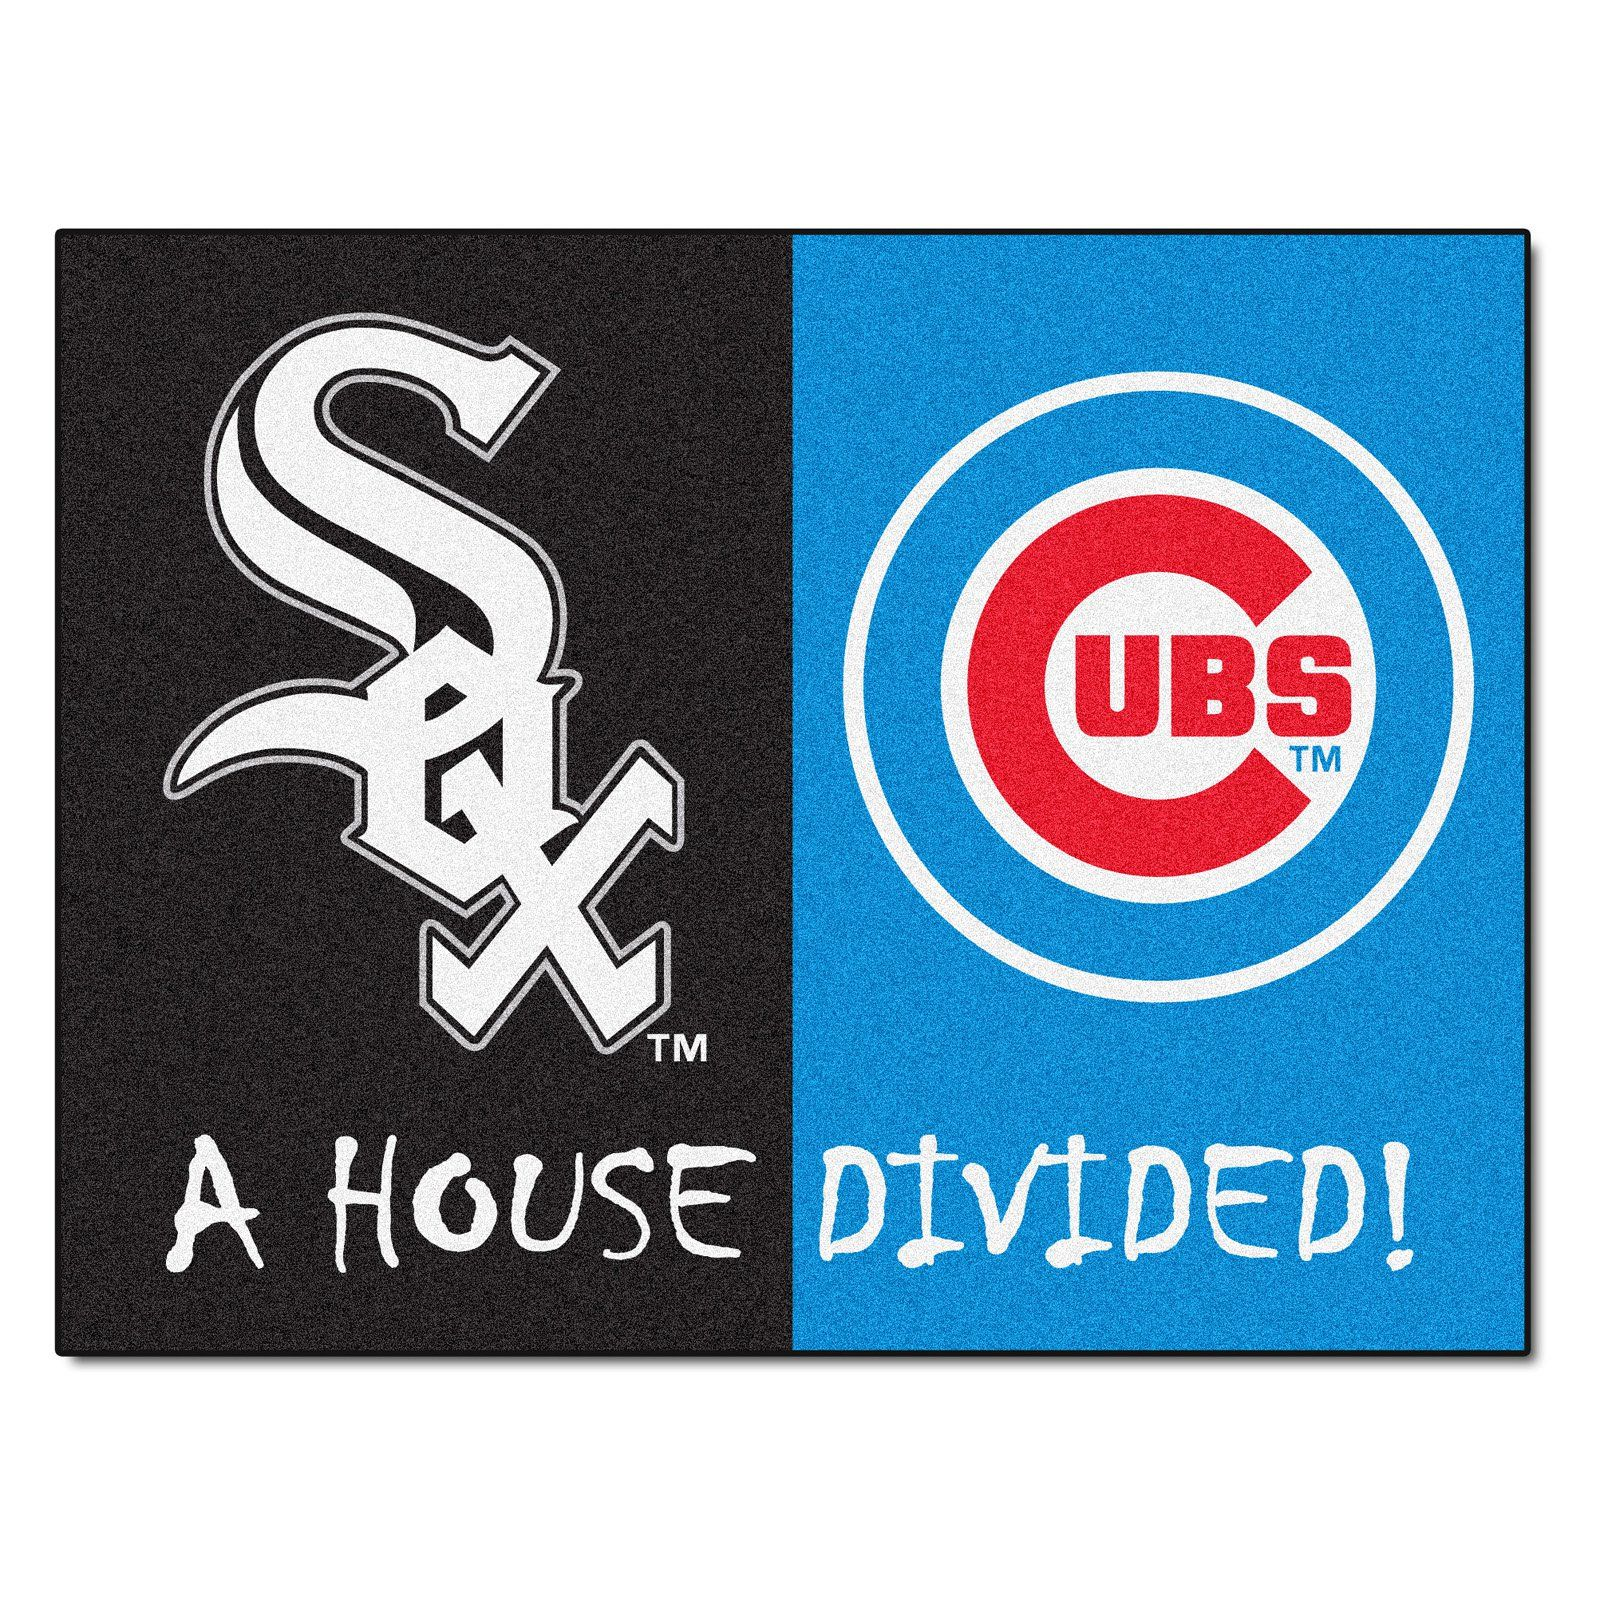 f55470ba770 Fanmats MLB 34 x 45 in. House Divided Rug in 2019   Products ...